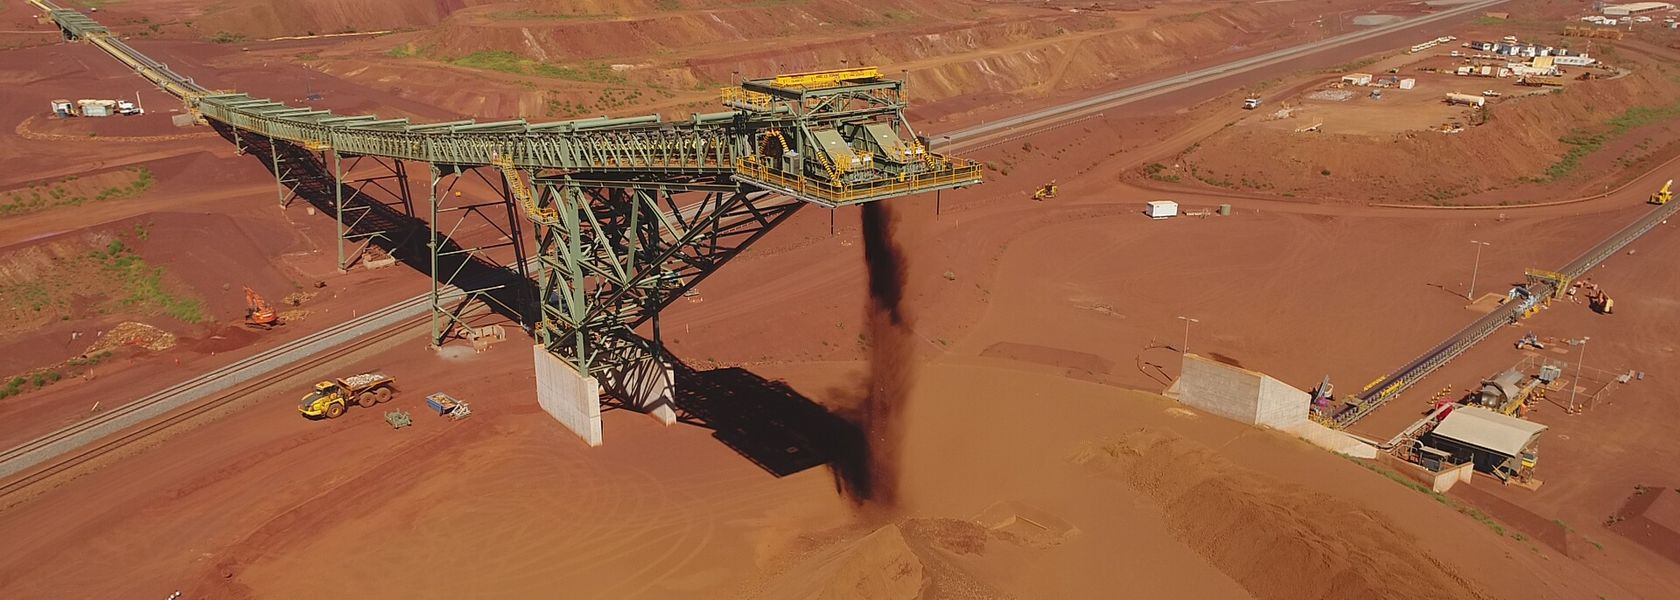 ozironore